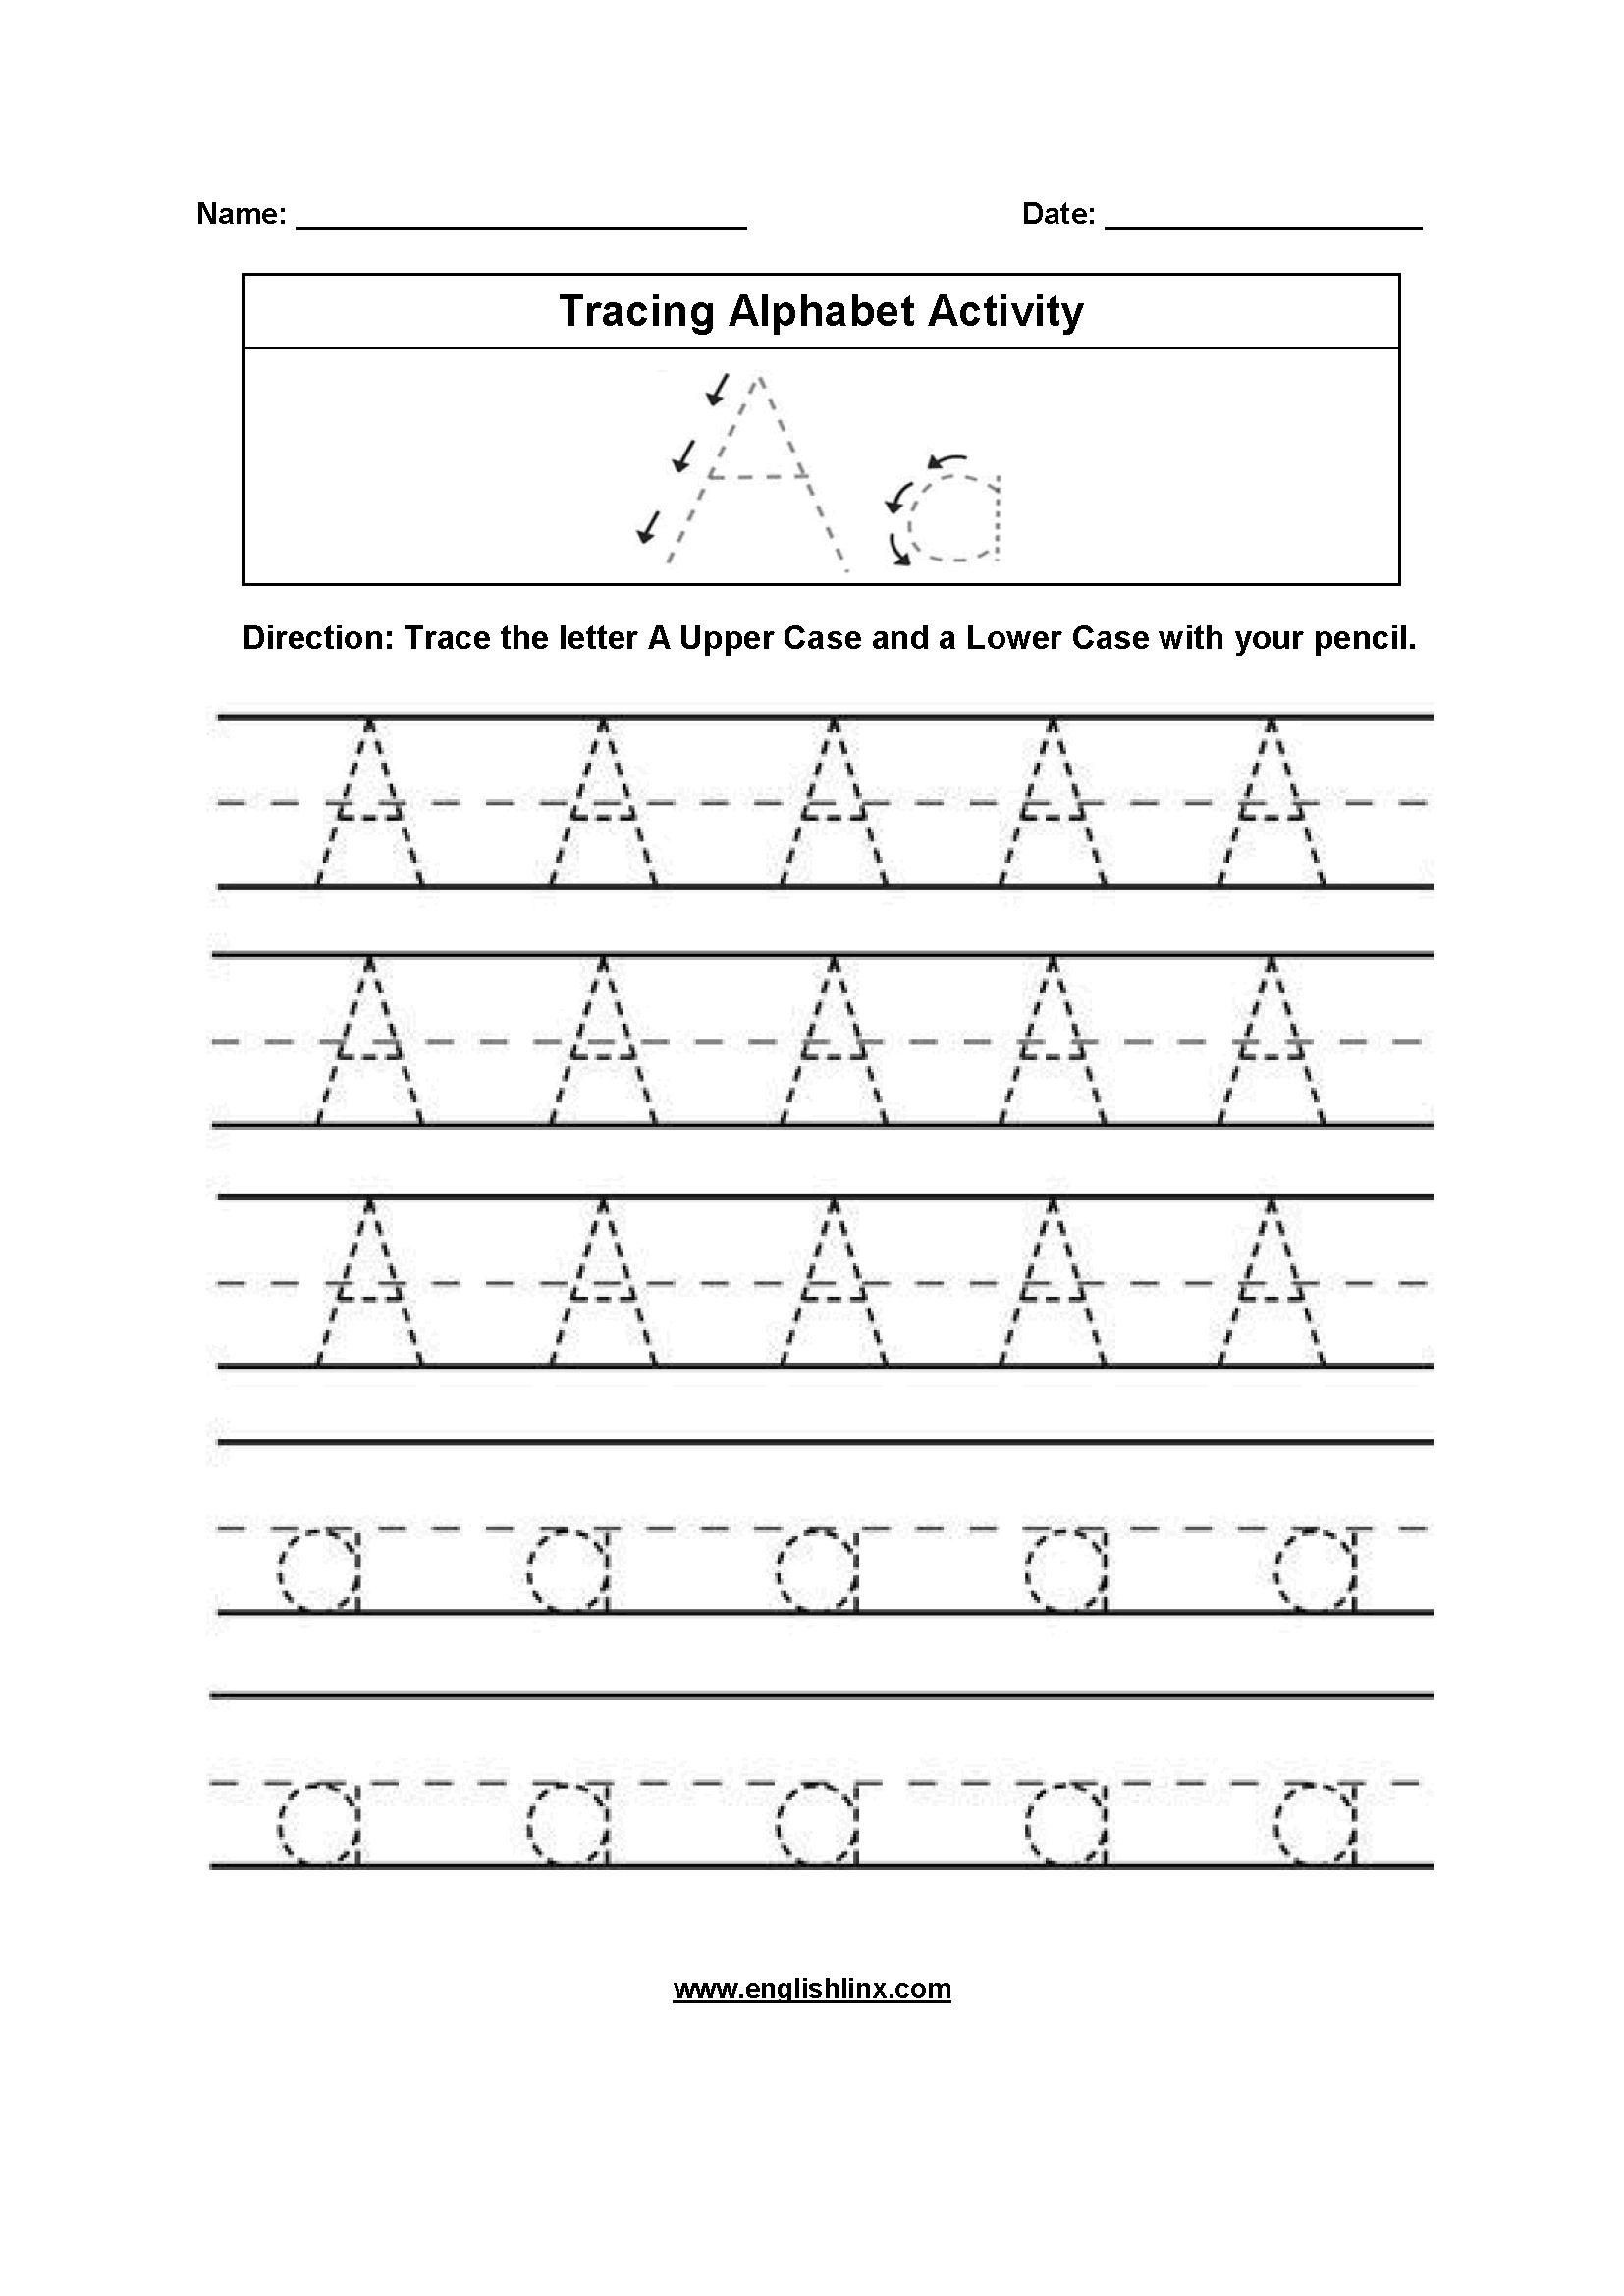 Worksheet ~ Worksheet Ideas Tracing For Toddlers Small pertaining to A Letter Tracing